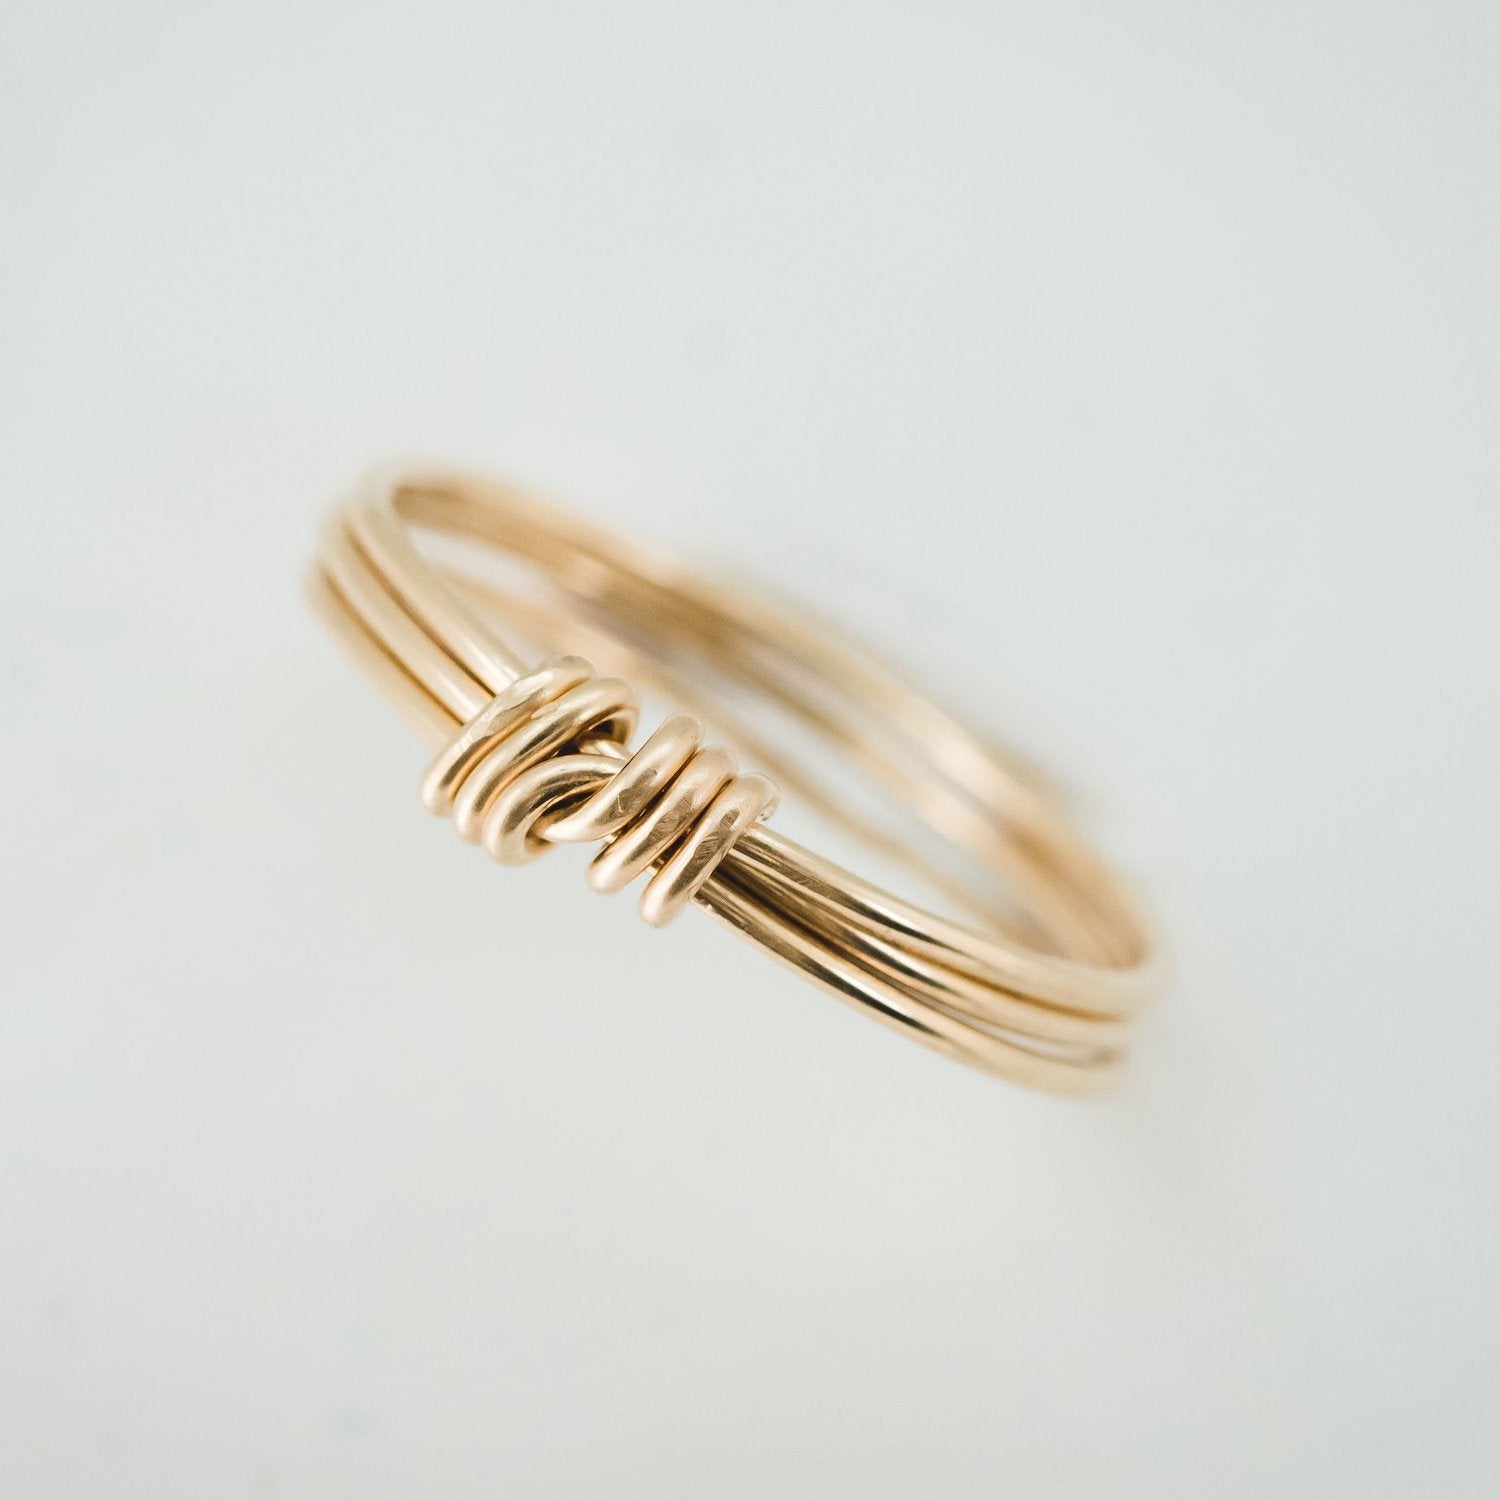 Anna Janelle Jewelry - The Knot Ring - INGAR